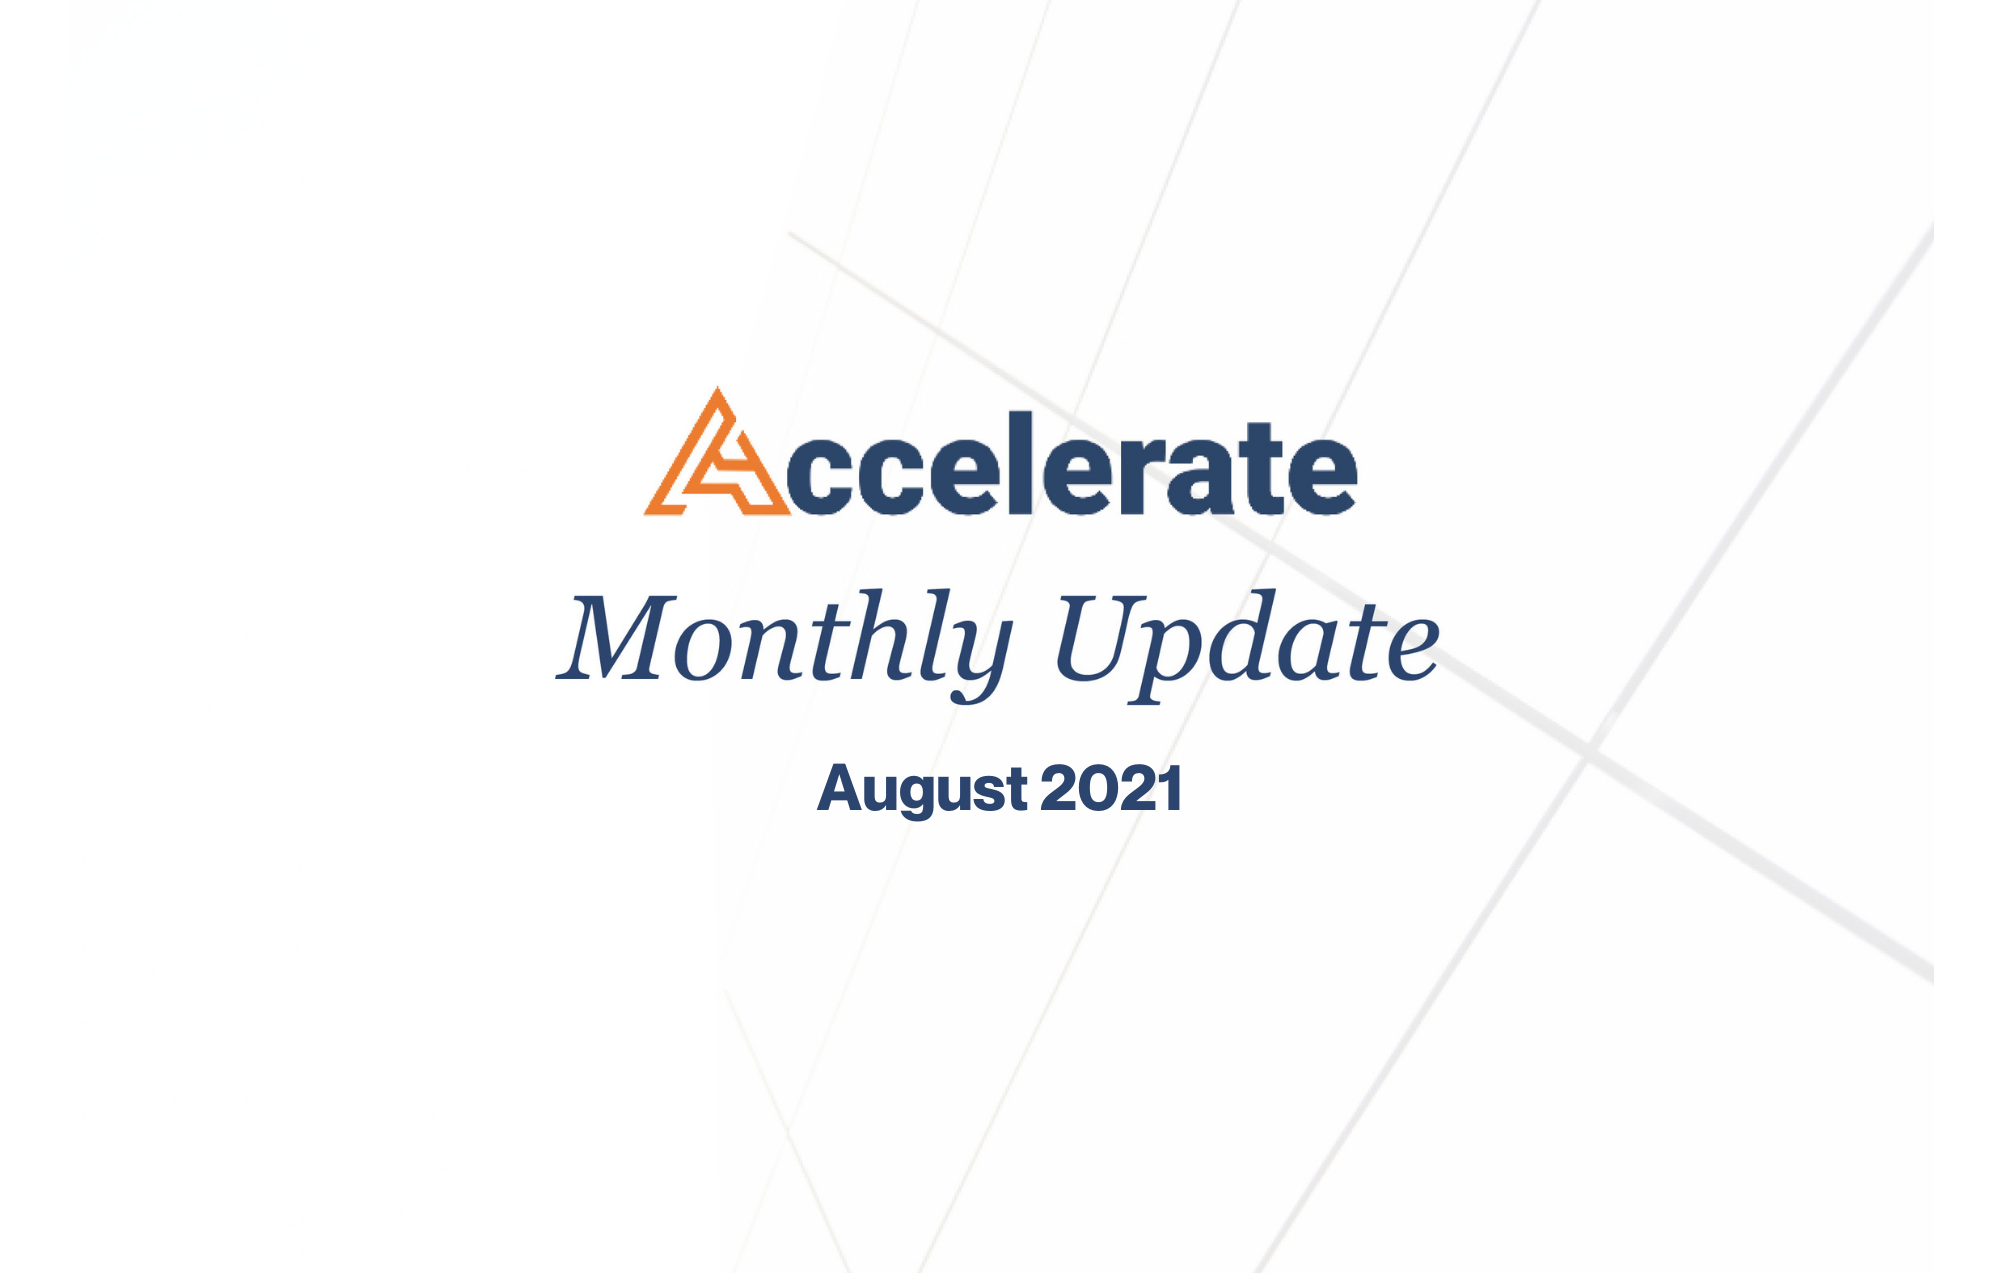 Accelerate Monthly Update – August 2021